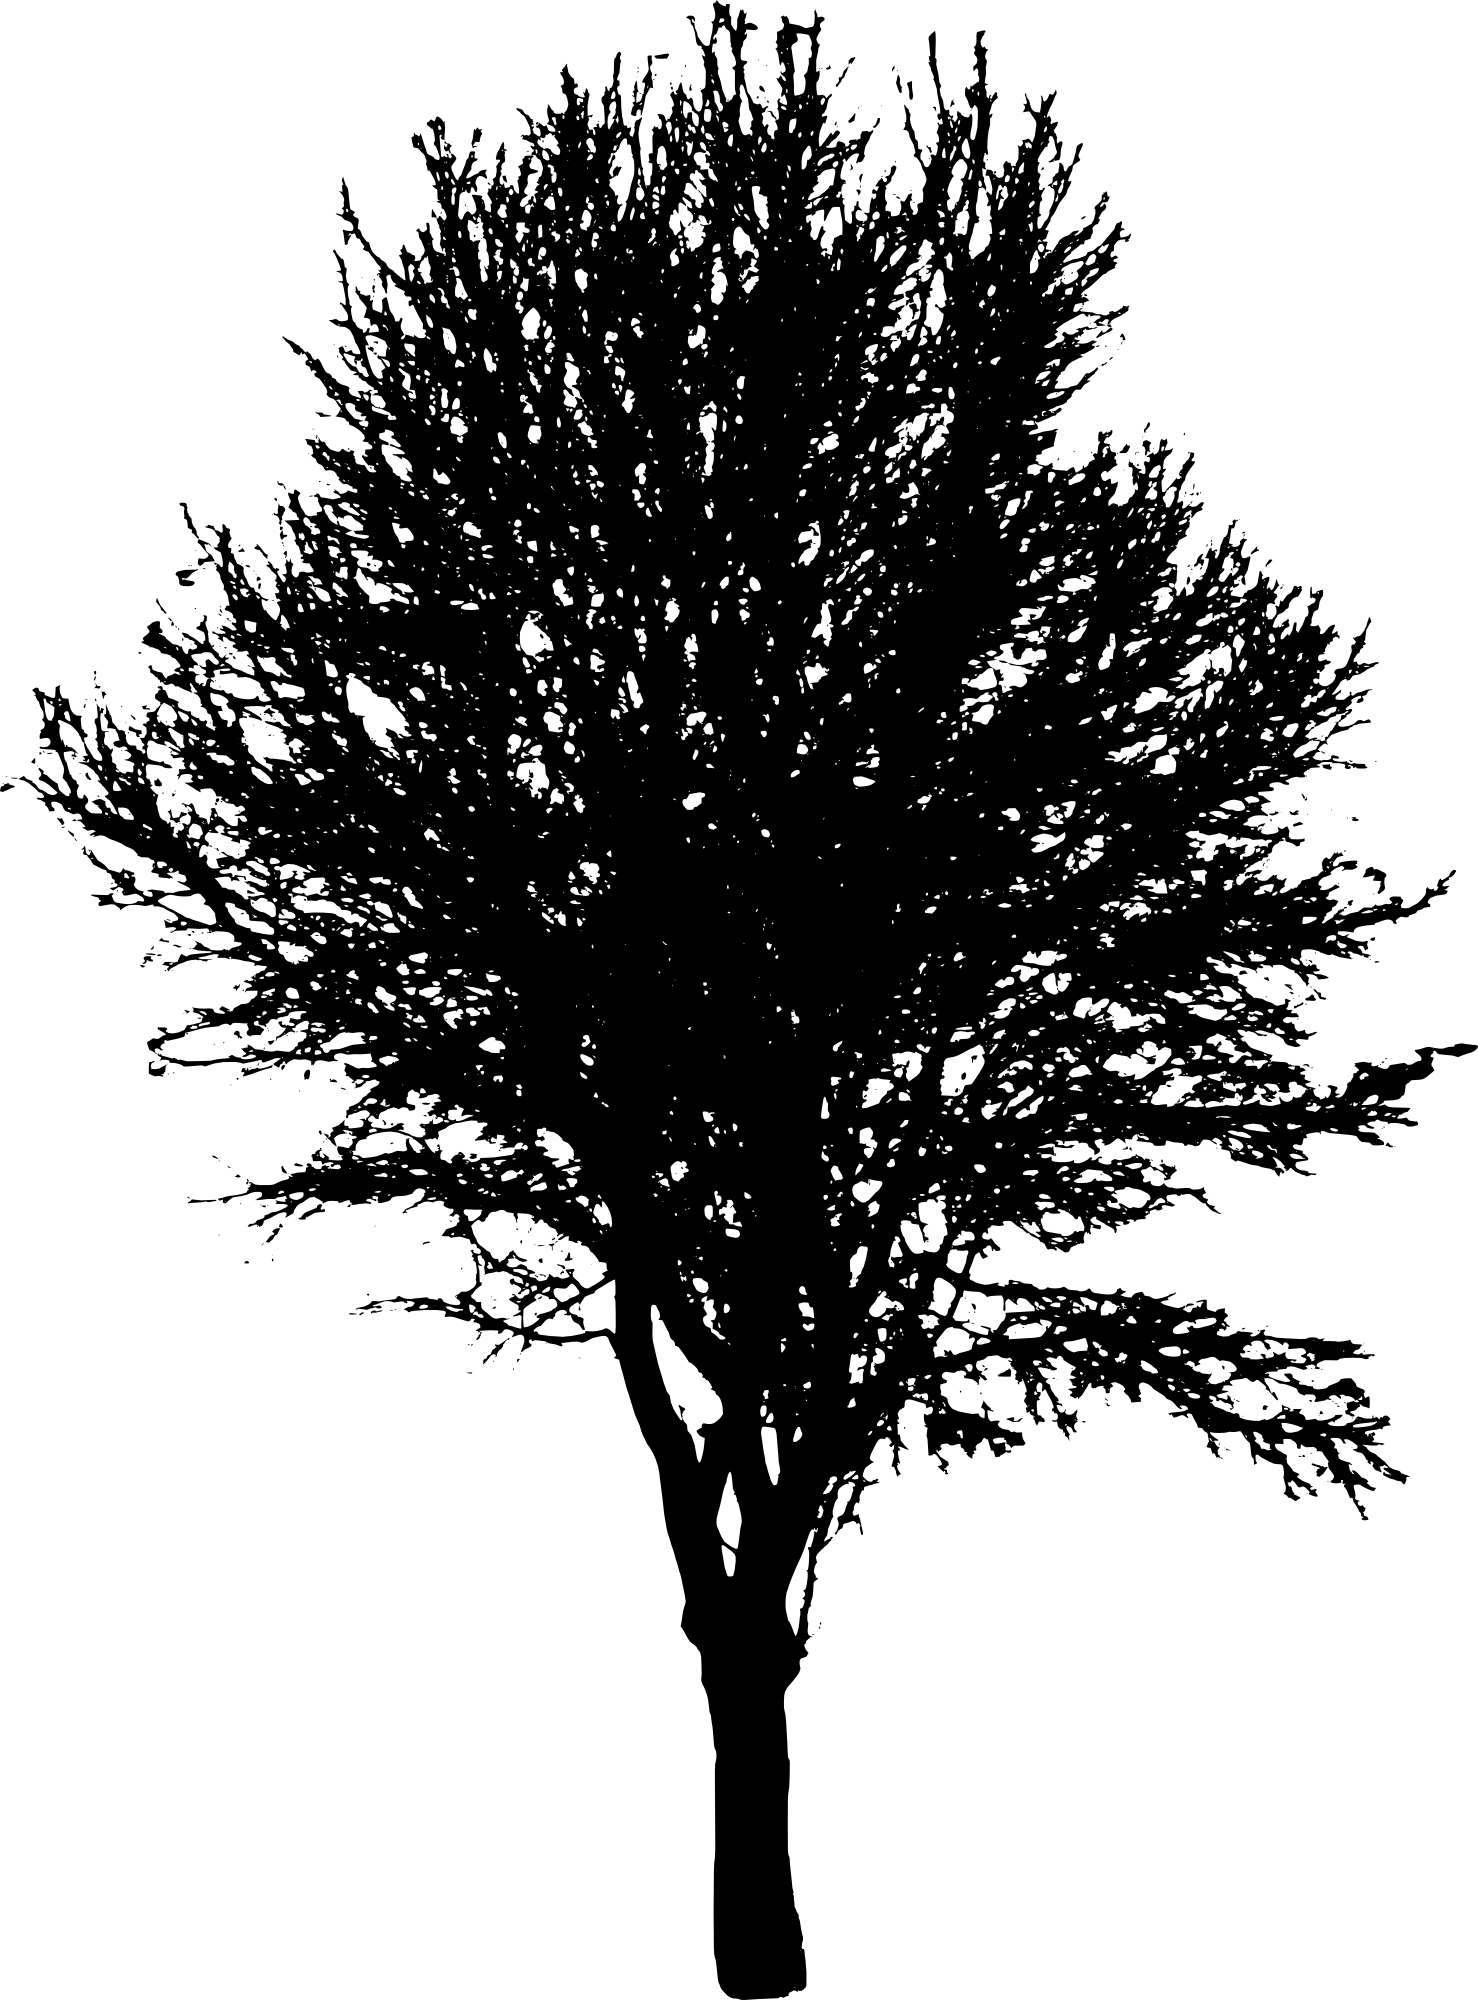 Trees png black and white. Tree silhouettes transparent